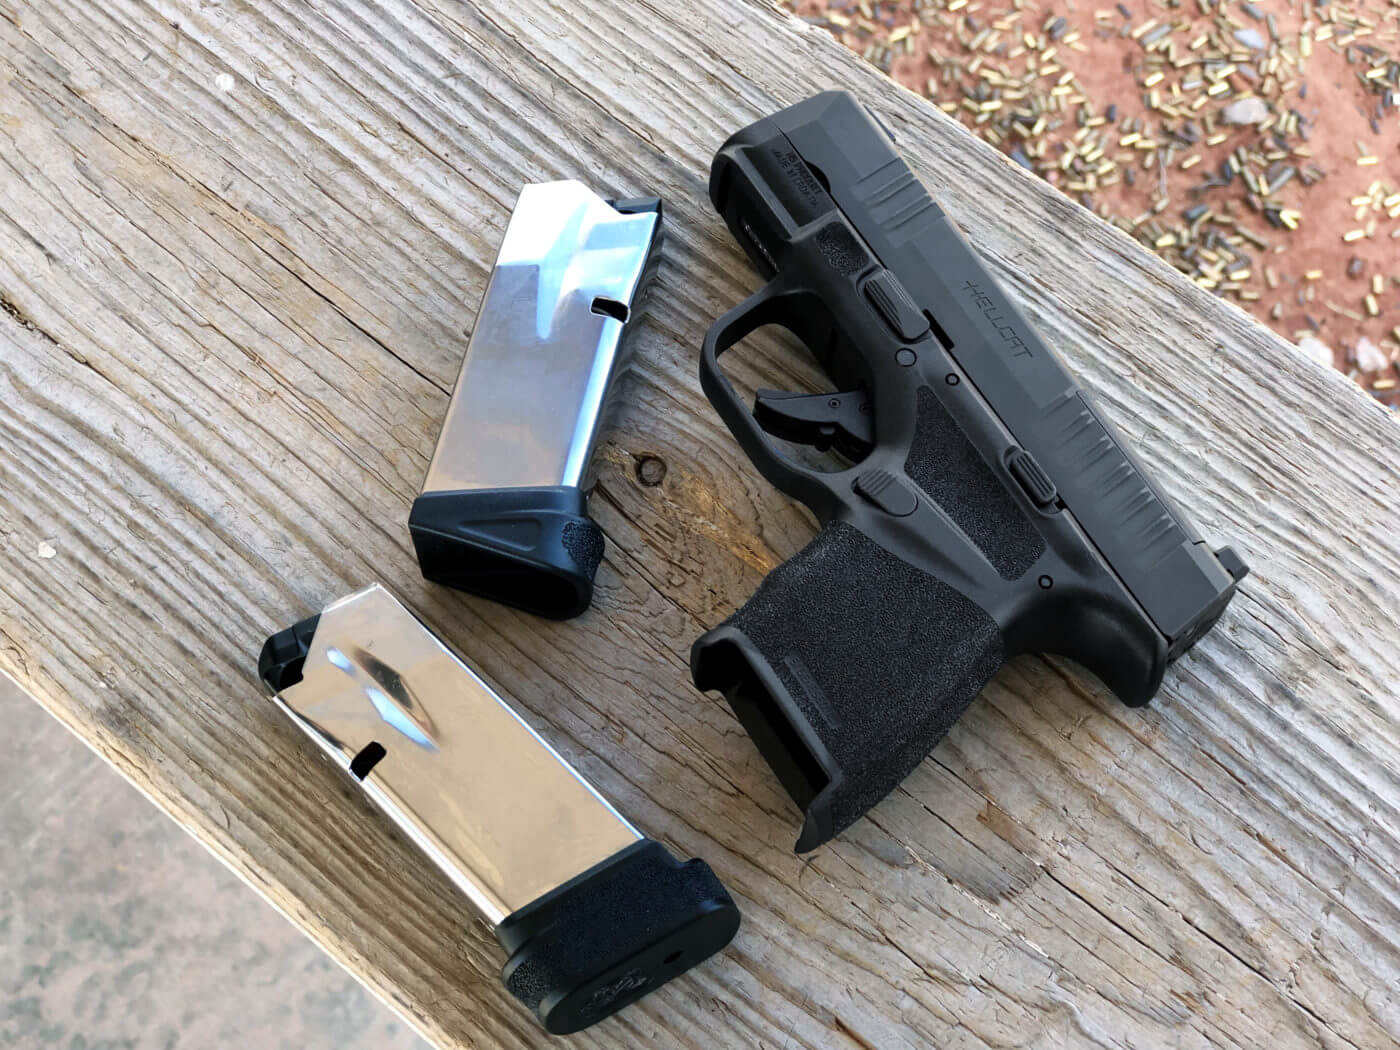 A 9mm micro pistol for CCW